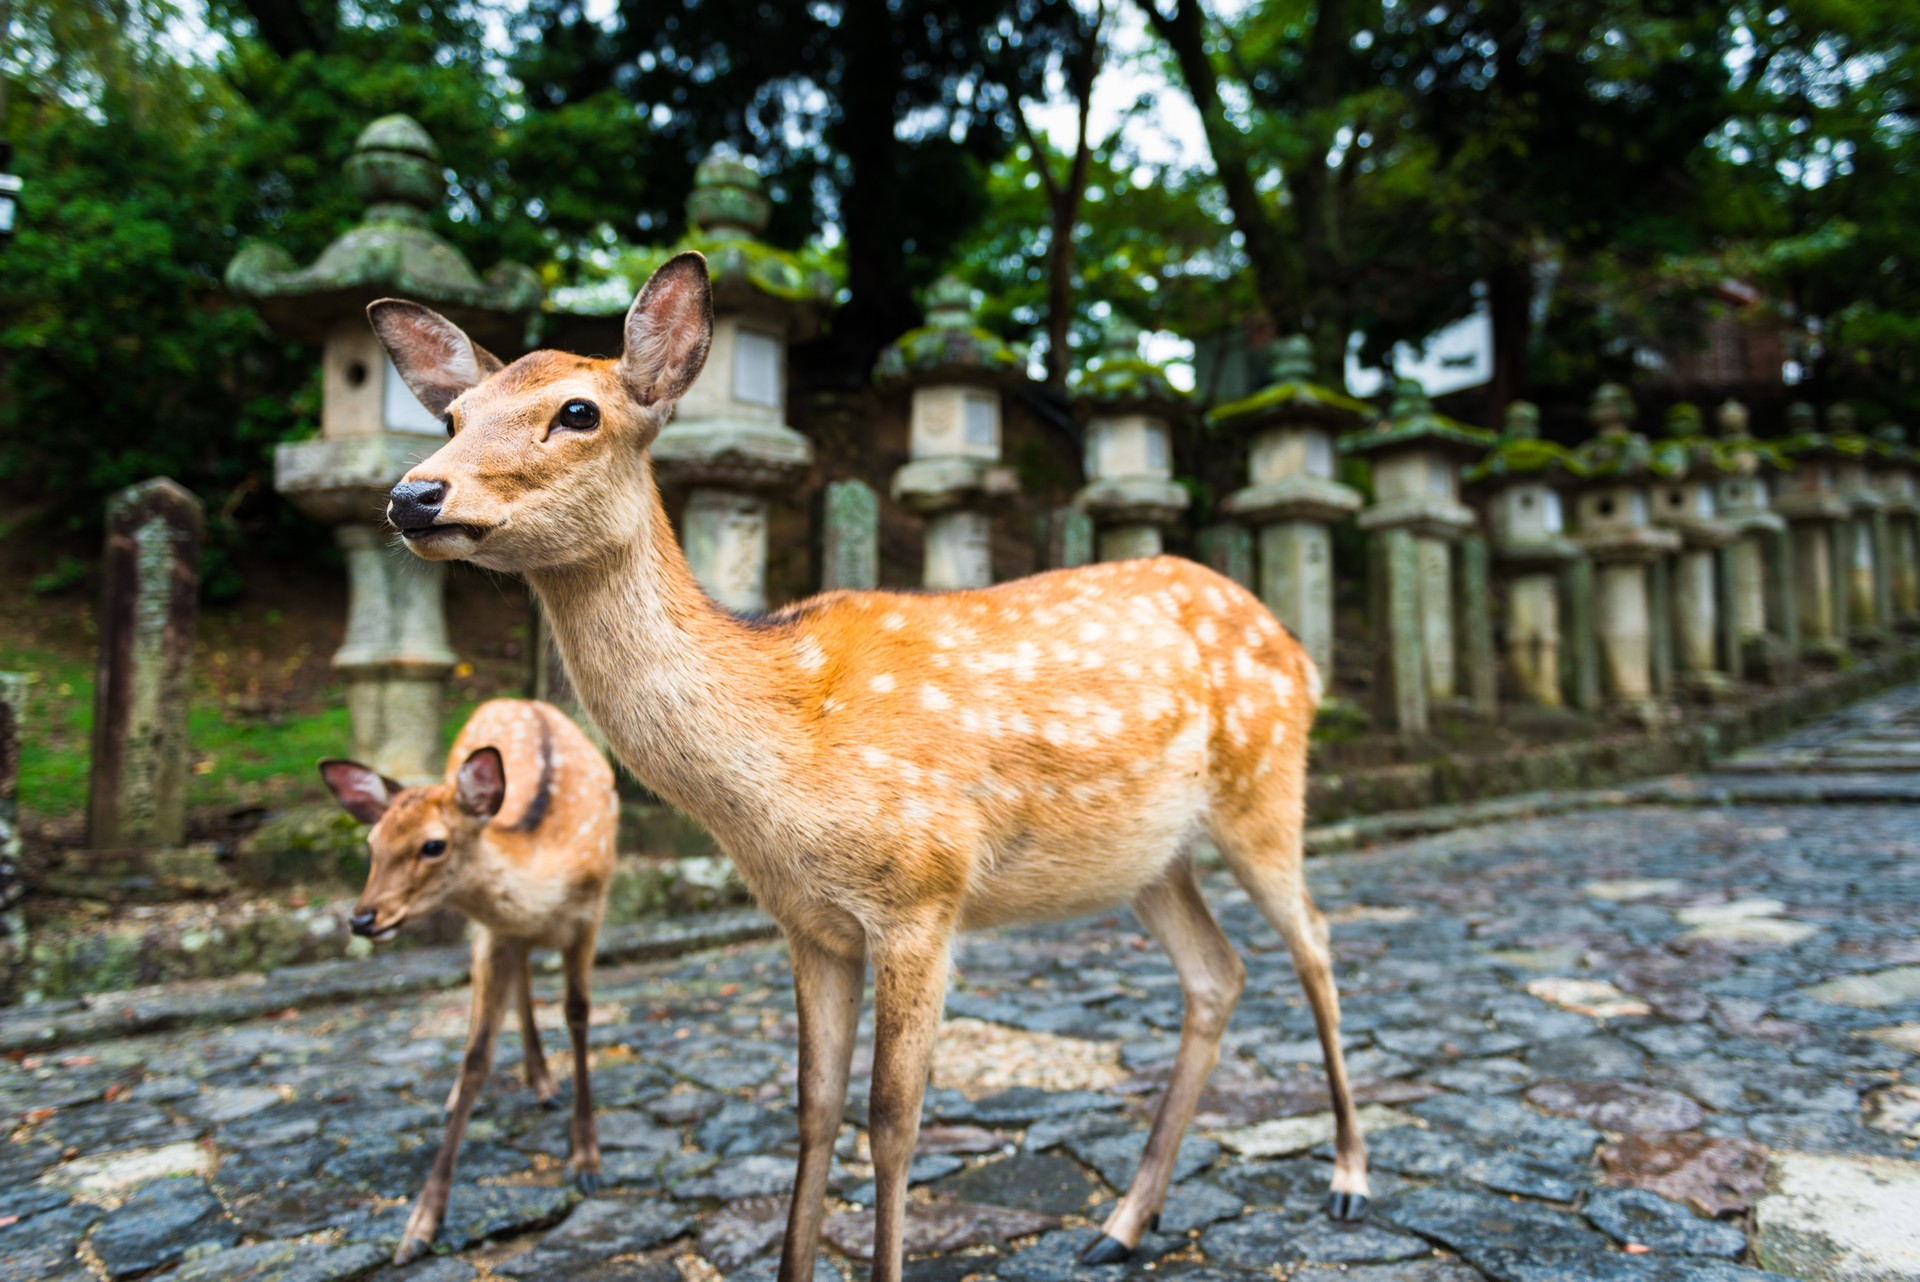 Deer and fawn in Nara